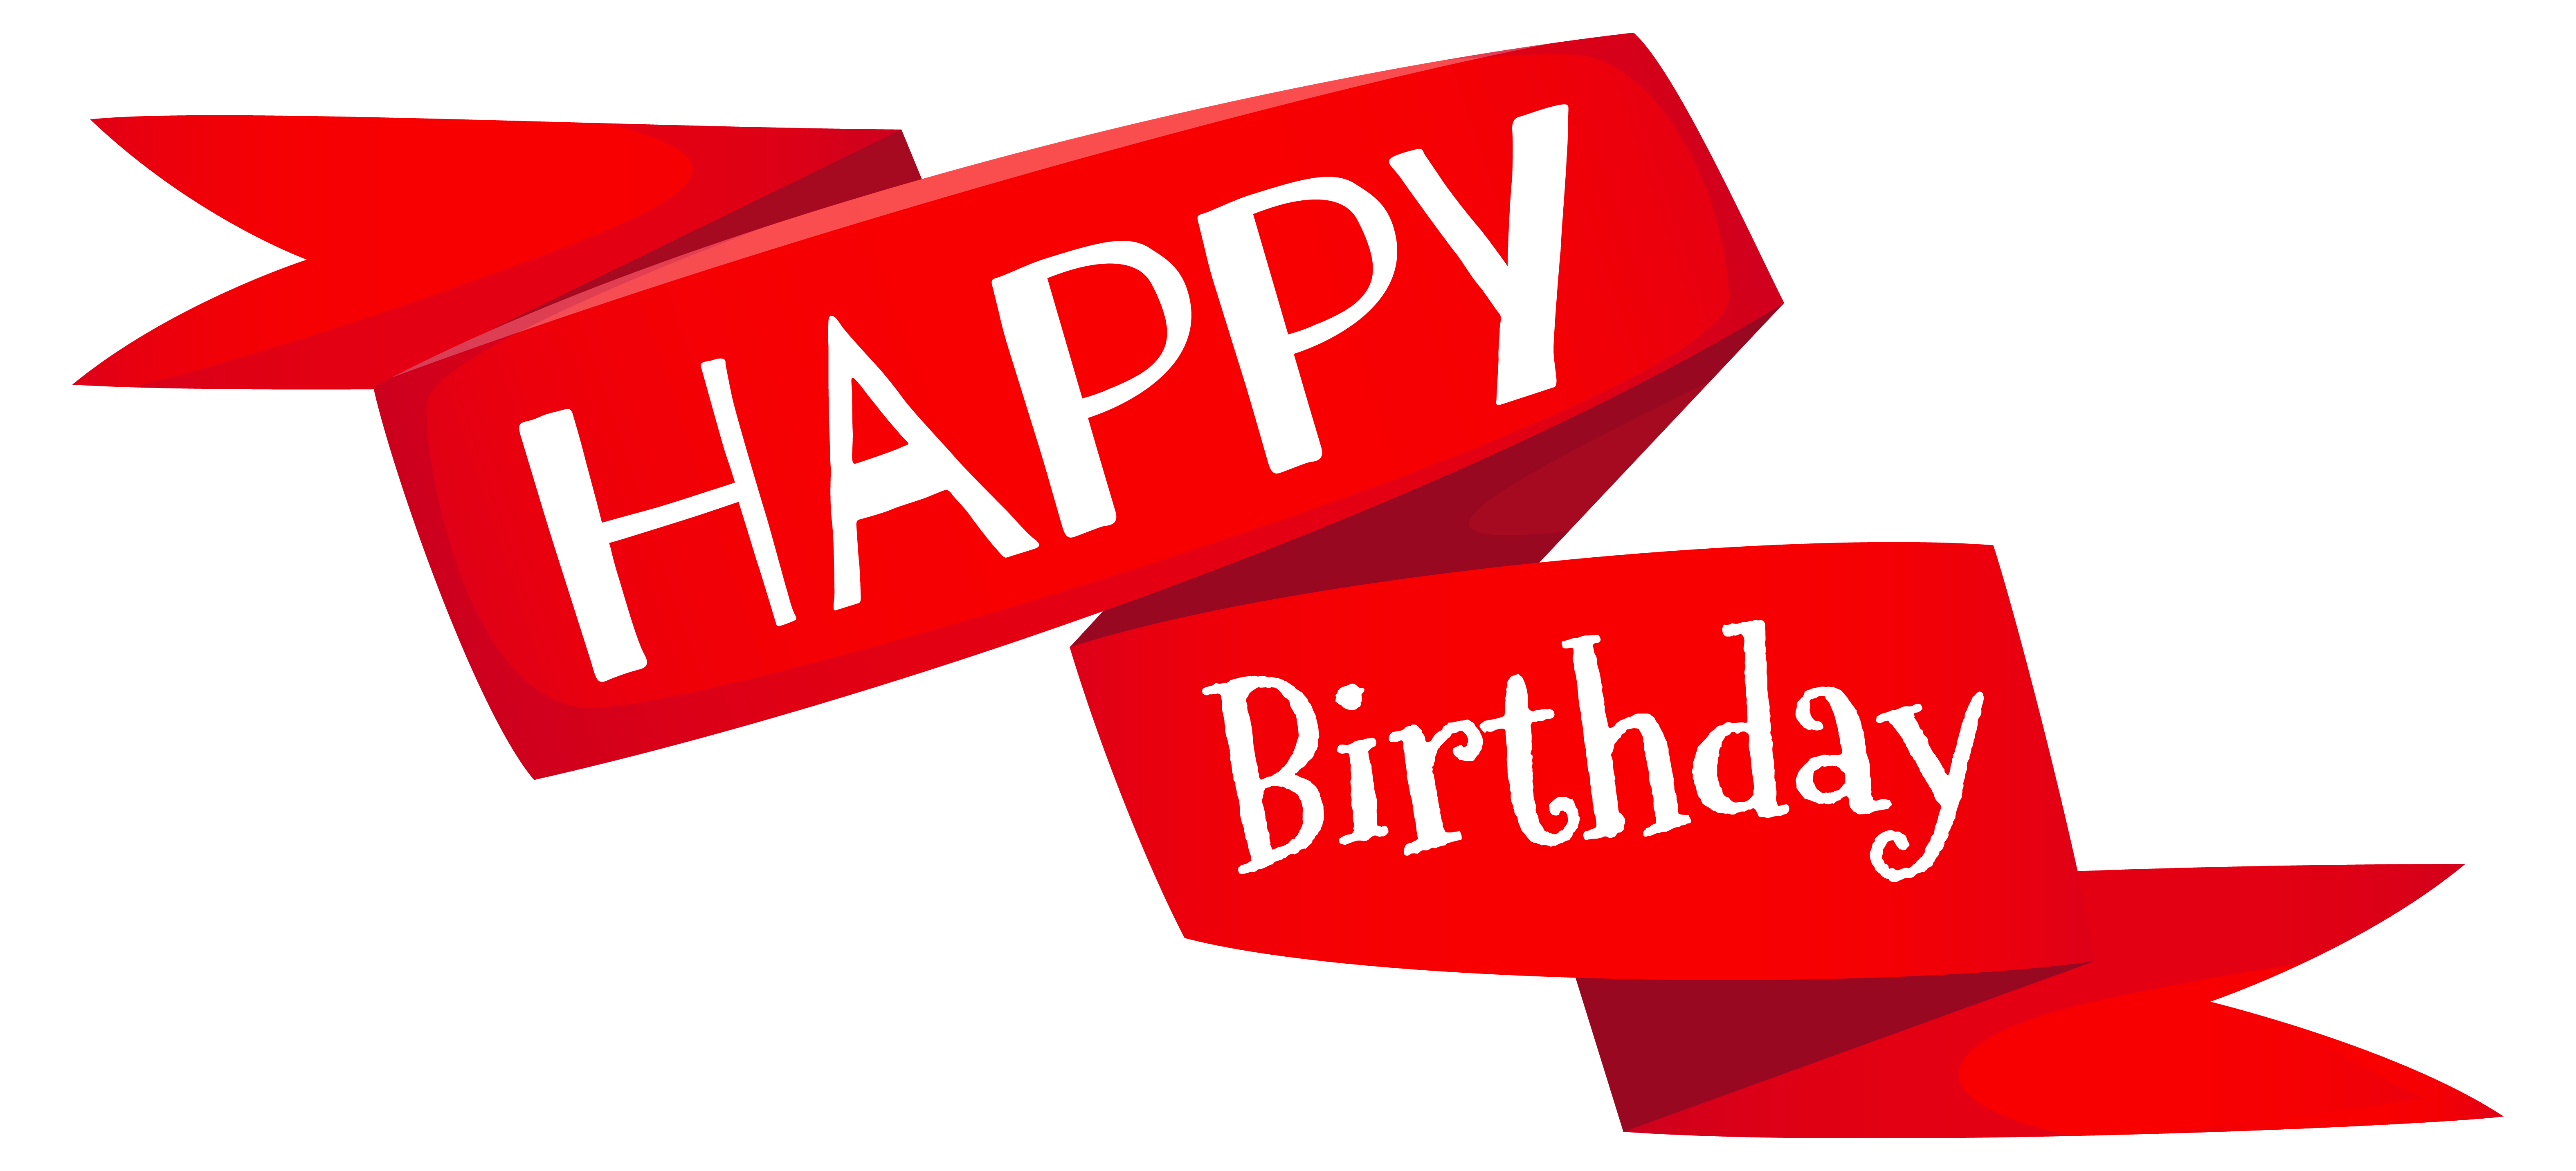 red happy birthday banner png image gallery yopriceville high quality images and